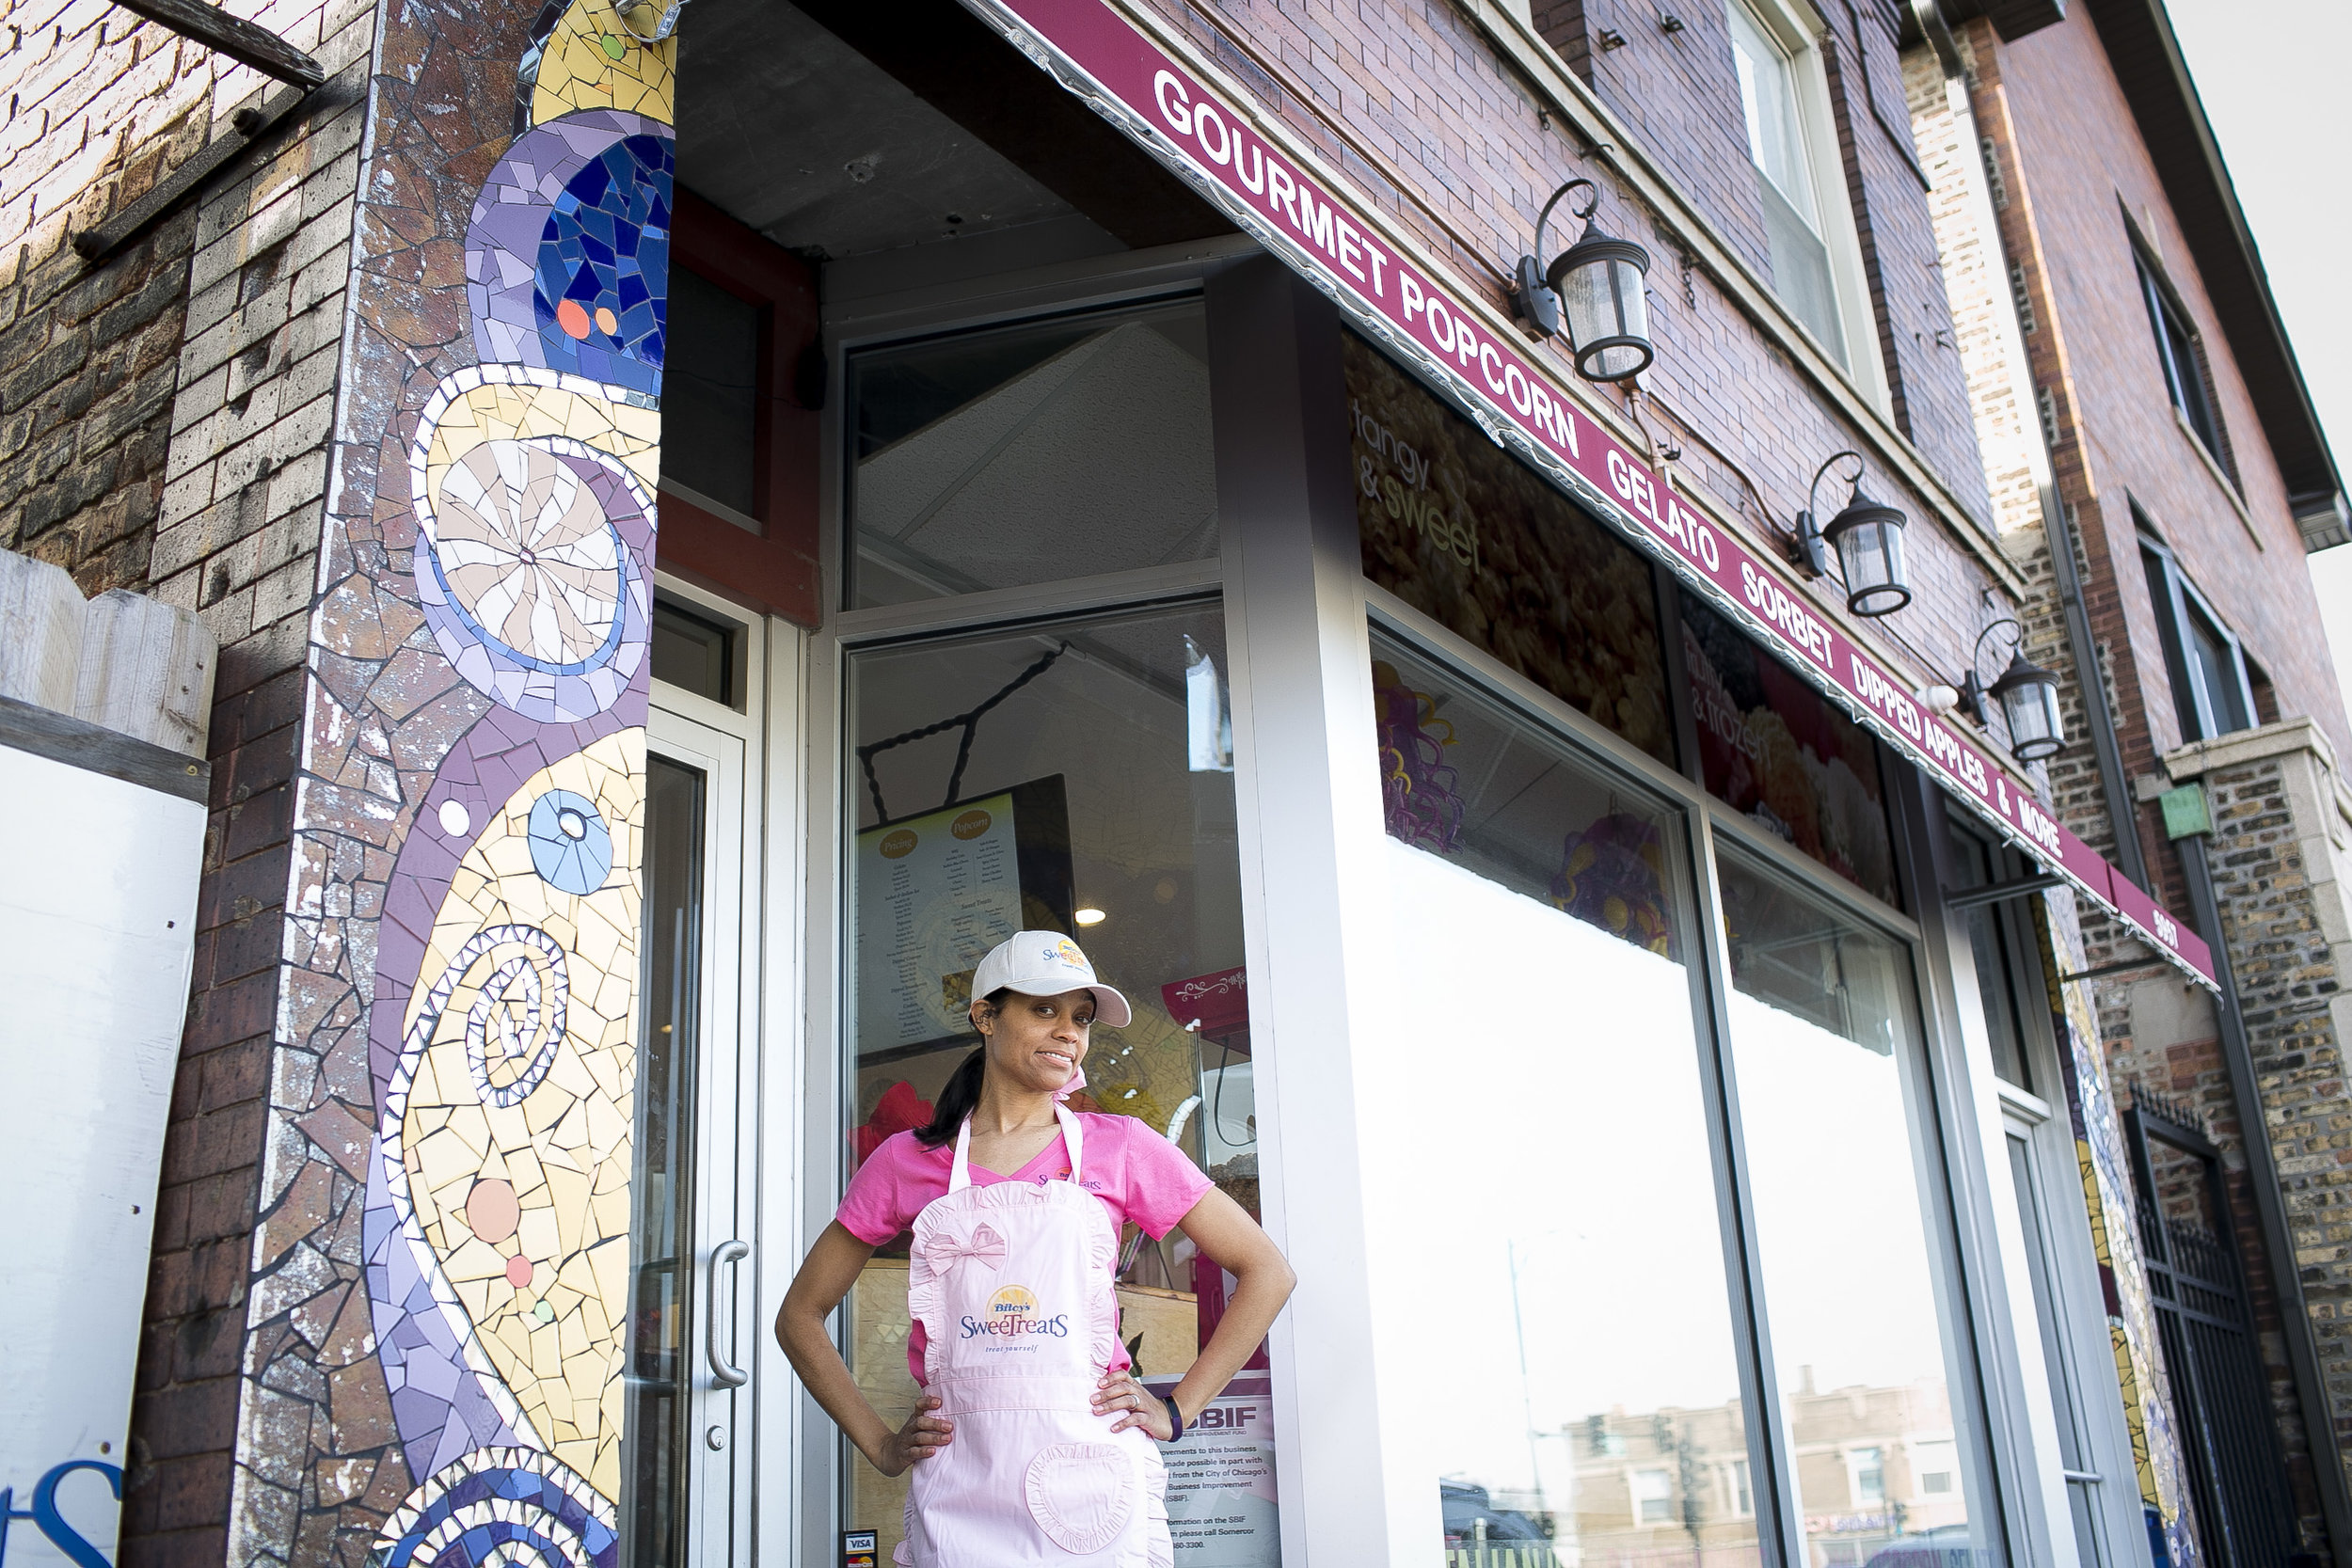 Layla Bitoy's is pictured outside her store, Bitoy's Sweet Treats, located on the ÒSoul City CorridorÓ on Chicago Ave., Tuesday, Feb. 14, 2017. (Photo by Michelle Kanaar | City Bureau)